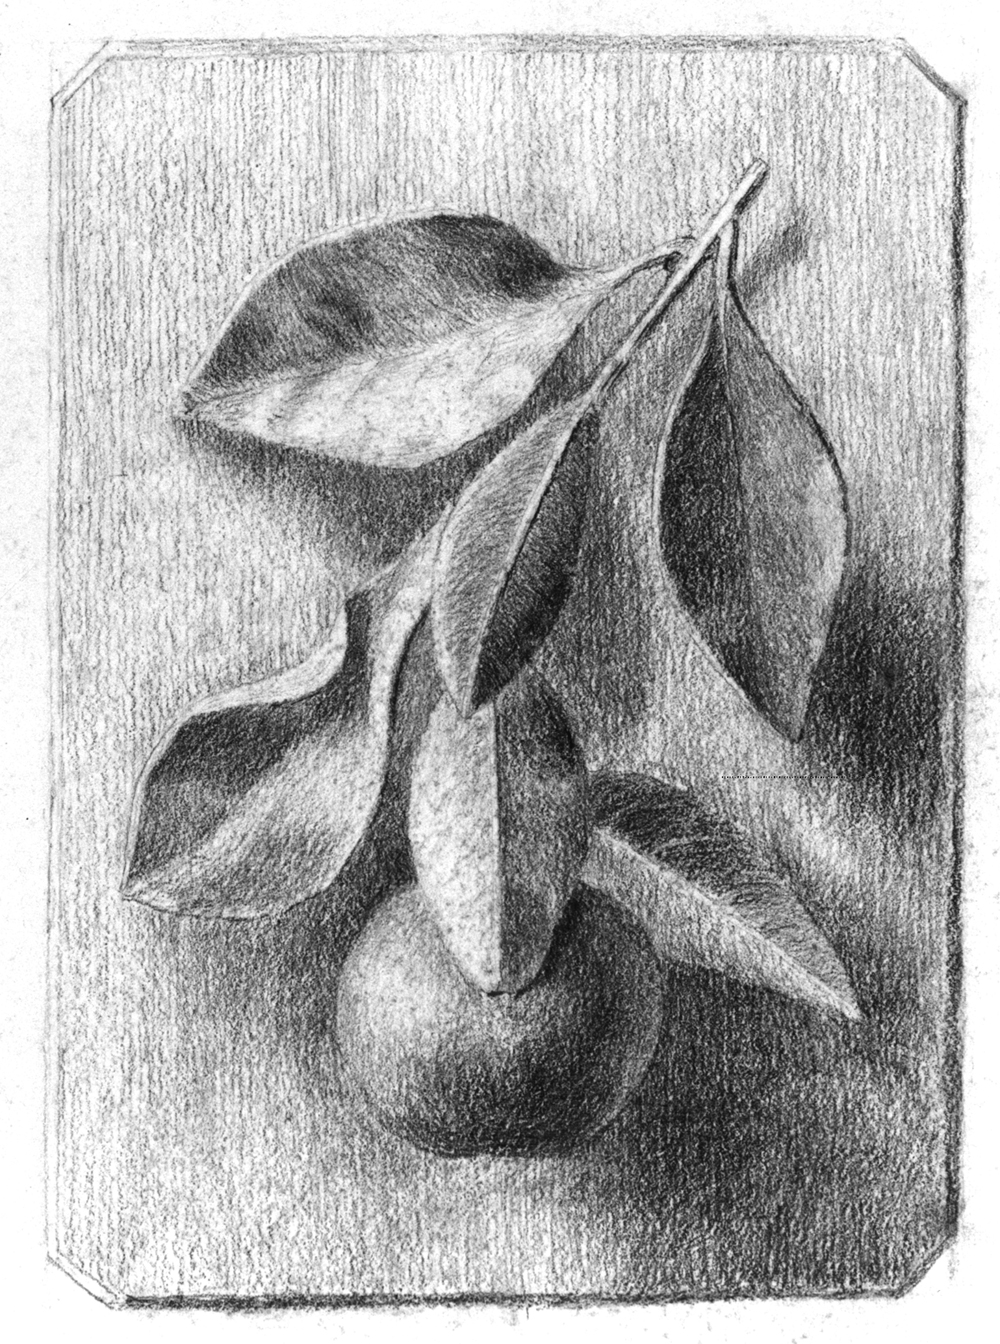 Drawn still life famous artist Life an exercise Student's of